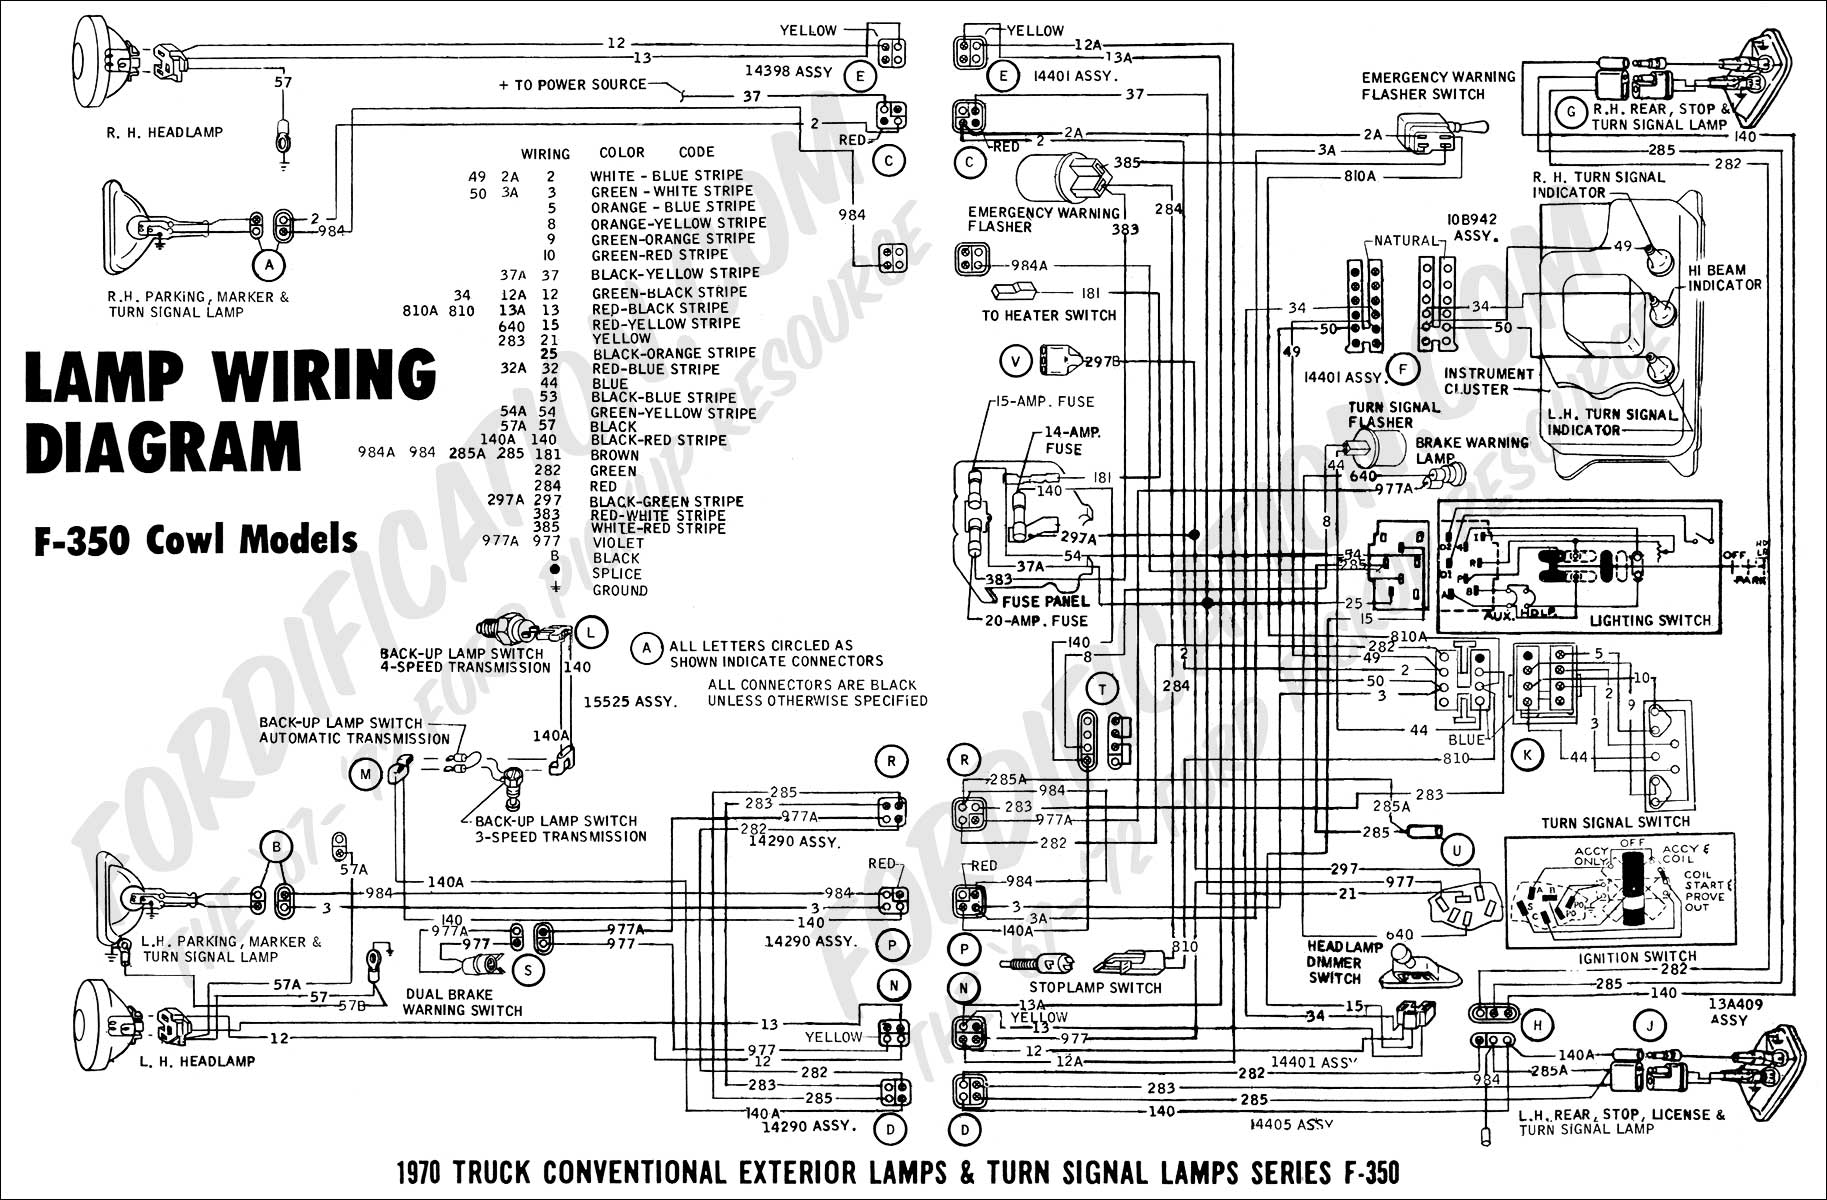 Miraculous 2011 F 350 Super Duty Factory Trailer Wiring Diagram Troubleshooting Wiring Cloud Licukshollocom